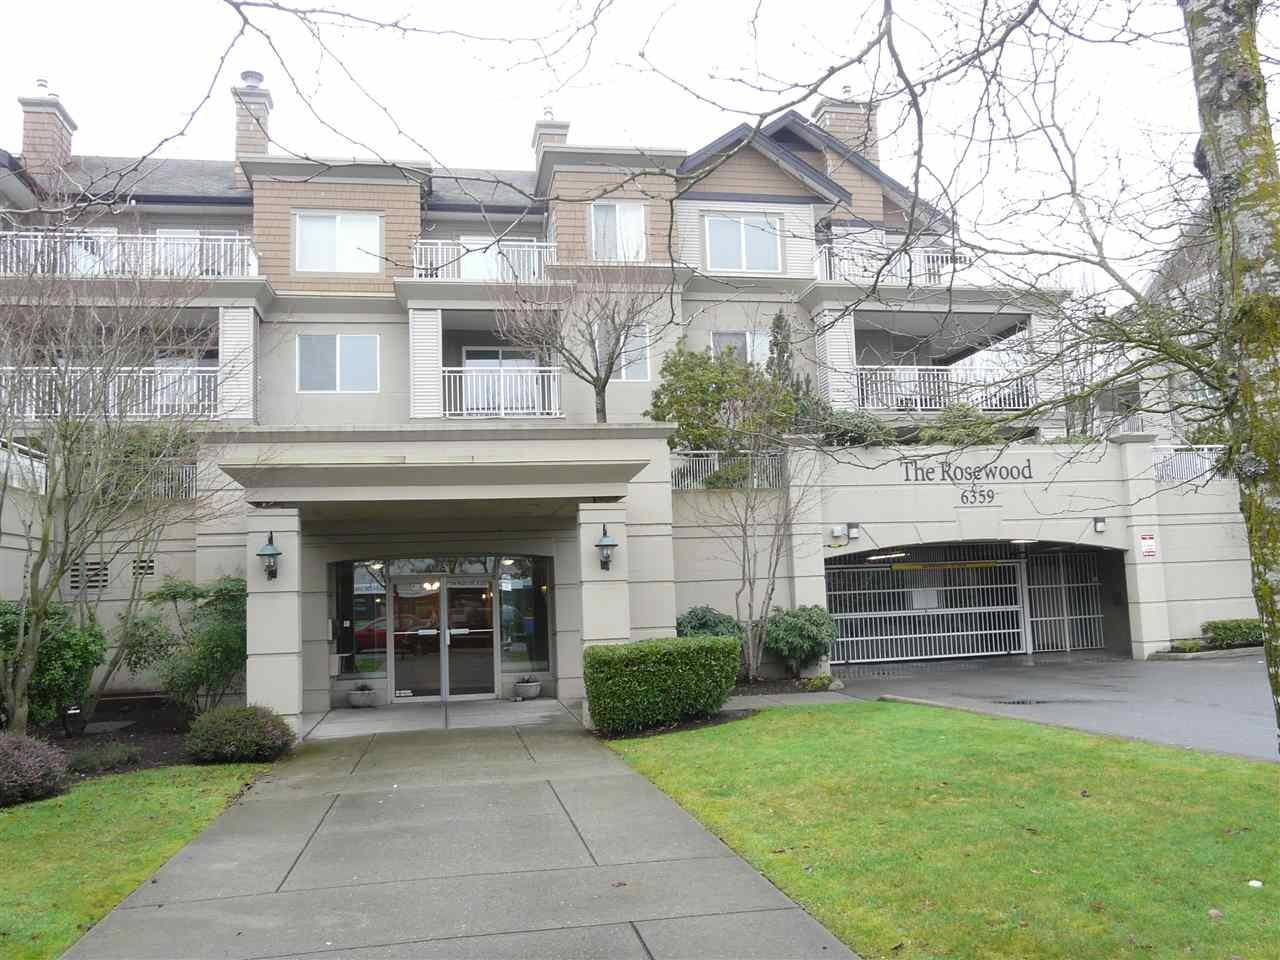 R2024275 - 416 6359 198 STREET, Willoughby Heights, Langley, BC - Apartment Unit